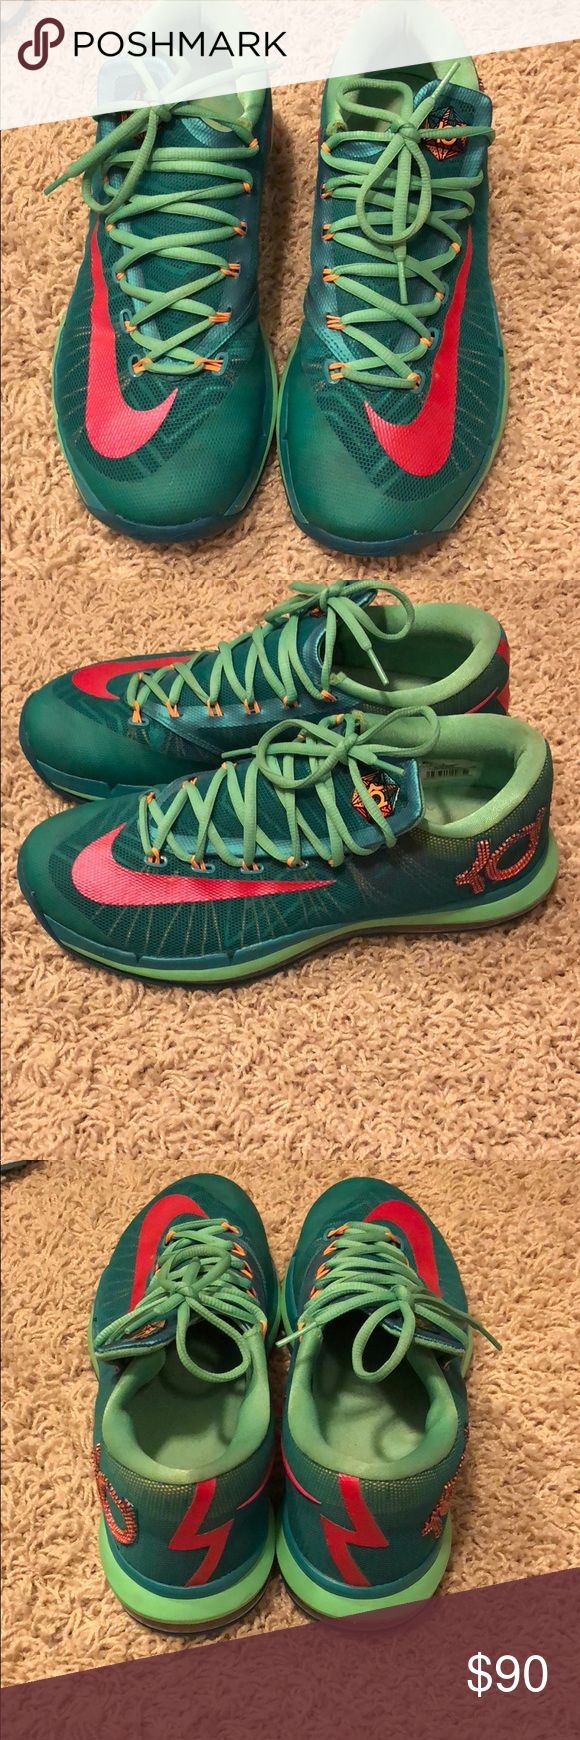 KD Nike basketball shoes KD basketball shoes! These are used but only minimal size of wear! Shoe is in excellent condition. Thread is still perfect on bottom, little signs of wear. These are men's size 9! Nike Shoes Sneakers #basketballshoes